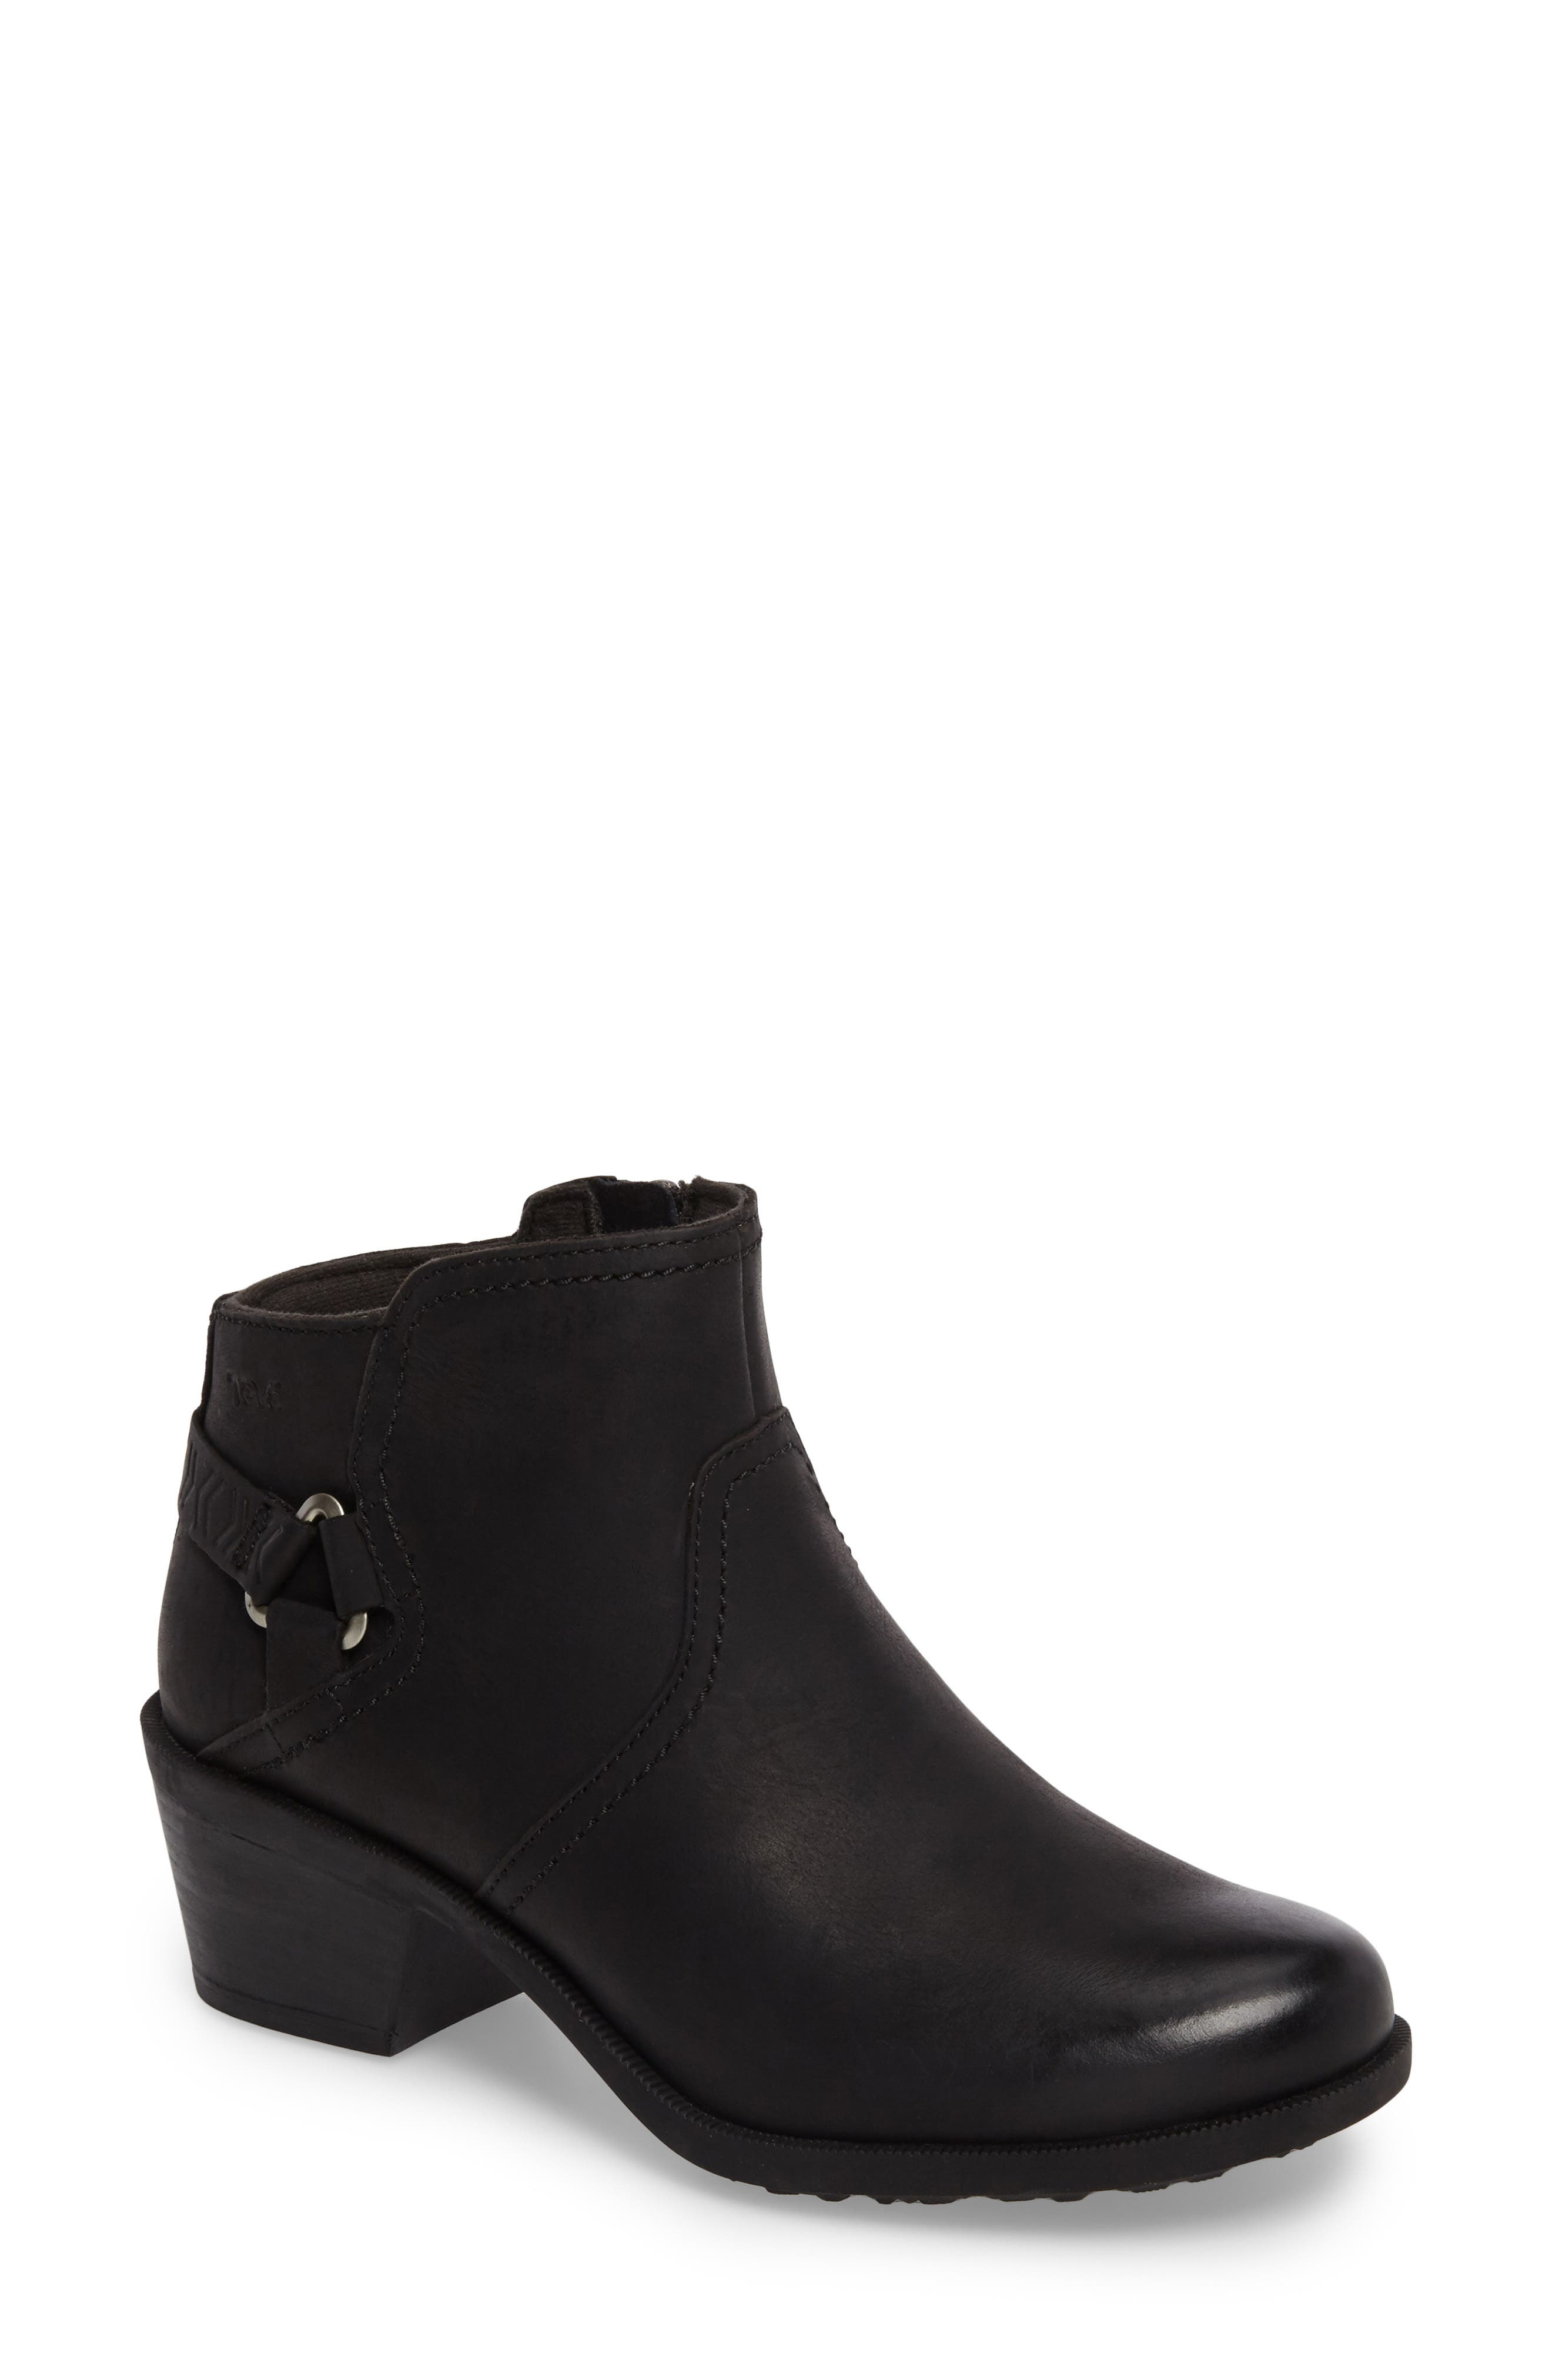 'Foxy' Bootie,                             Main thumbnail 1, color,                             BLACK LEATHER